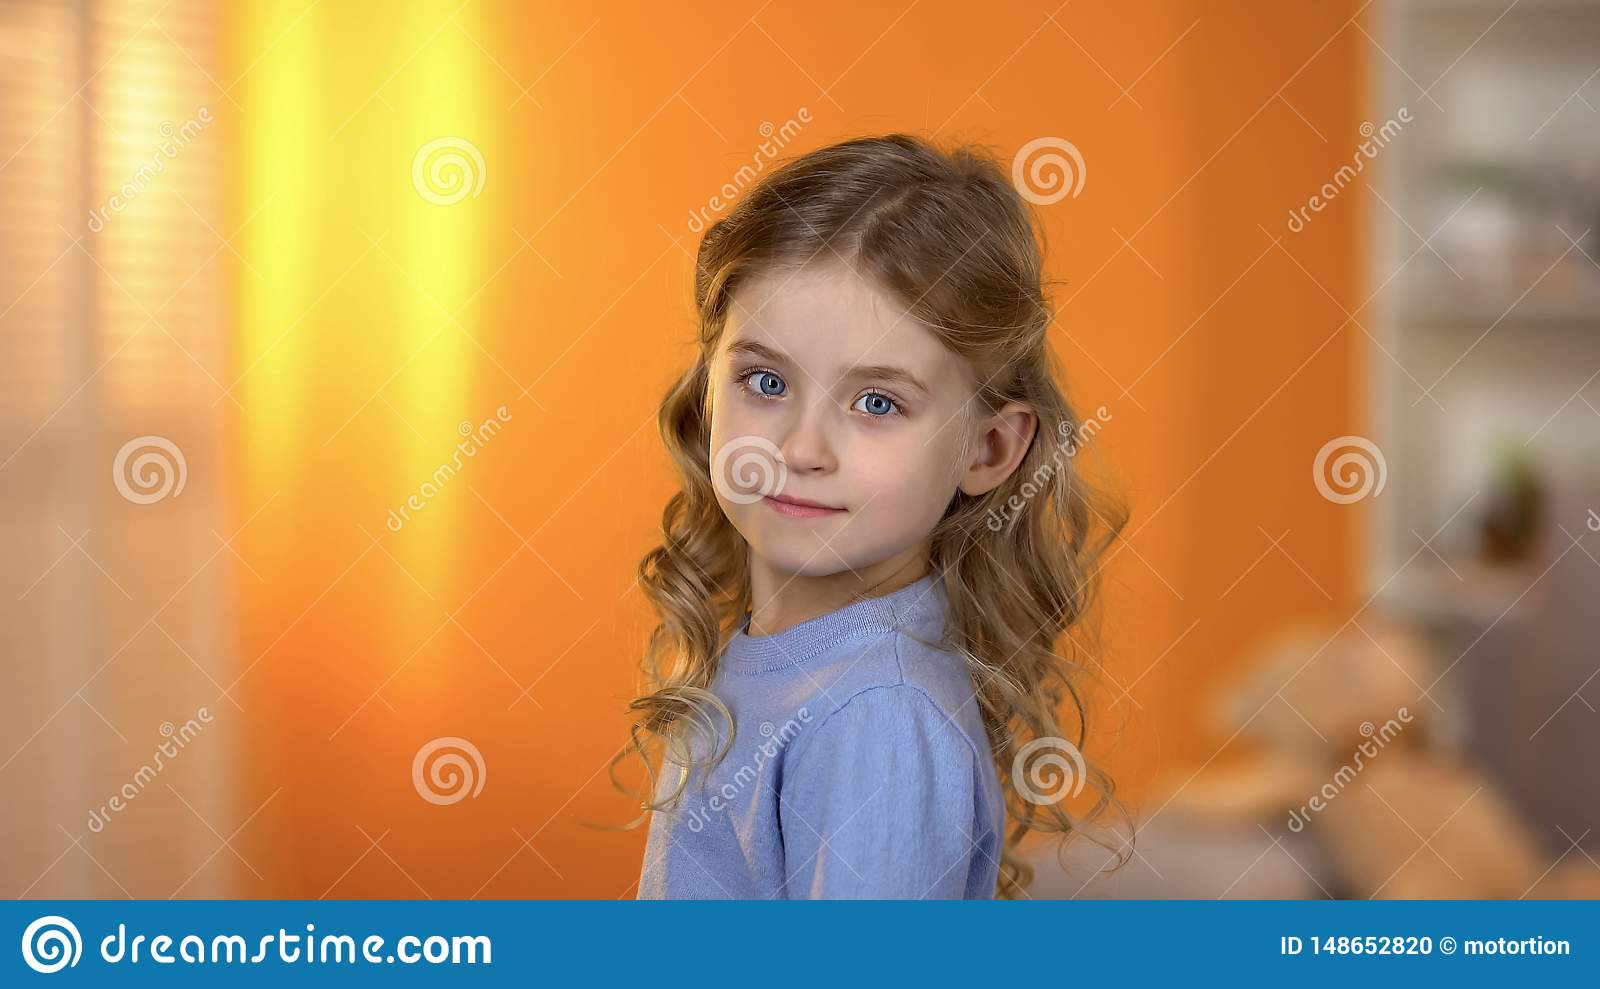 Adorable girl with beautiful hairstyle looking at camera, birthday celebration